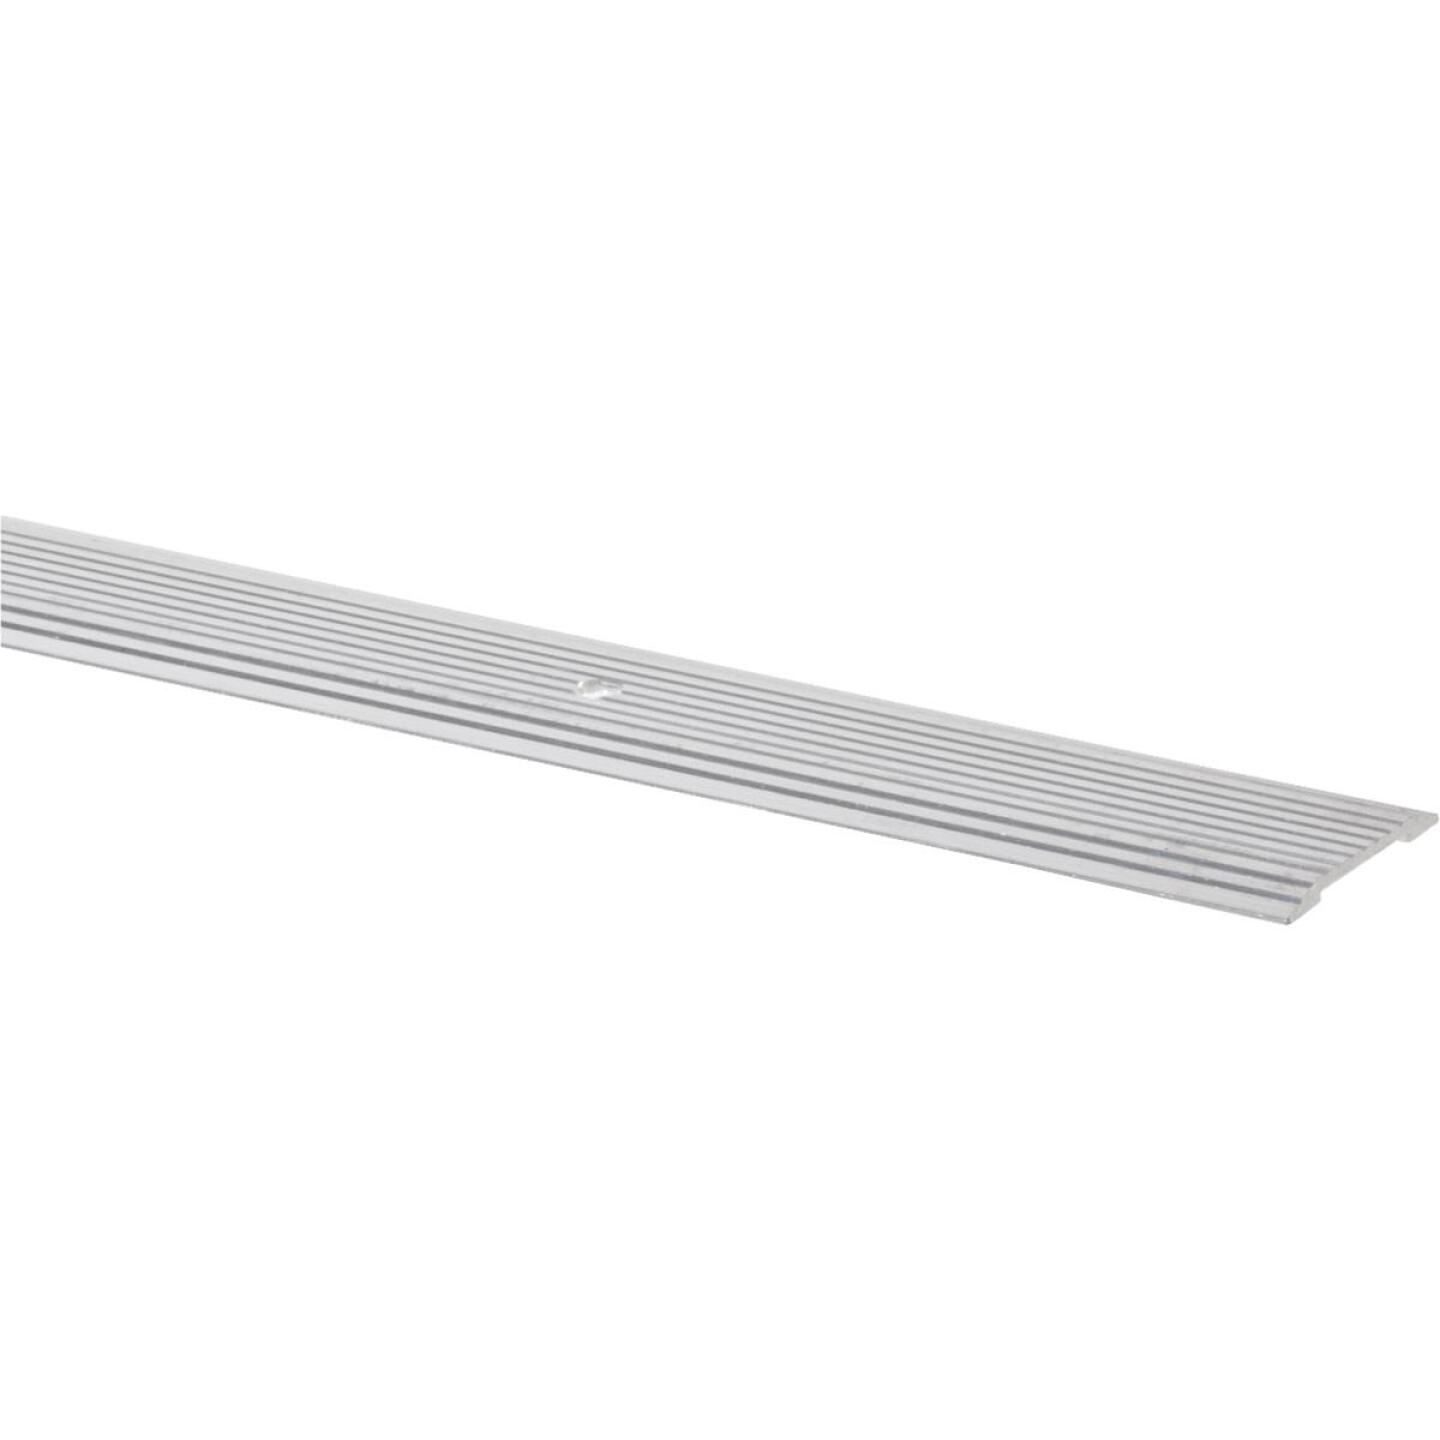 Do it Silver Satin 1-1/4 In. x 3 Ft. Aluminum Seam Binder, Wide Image 1